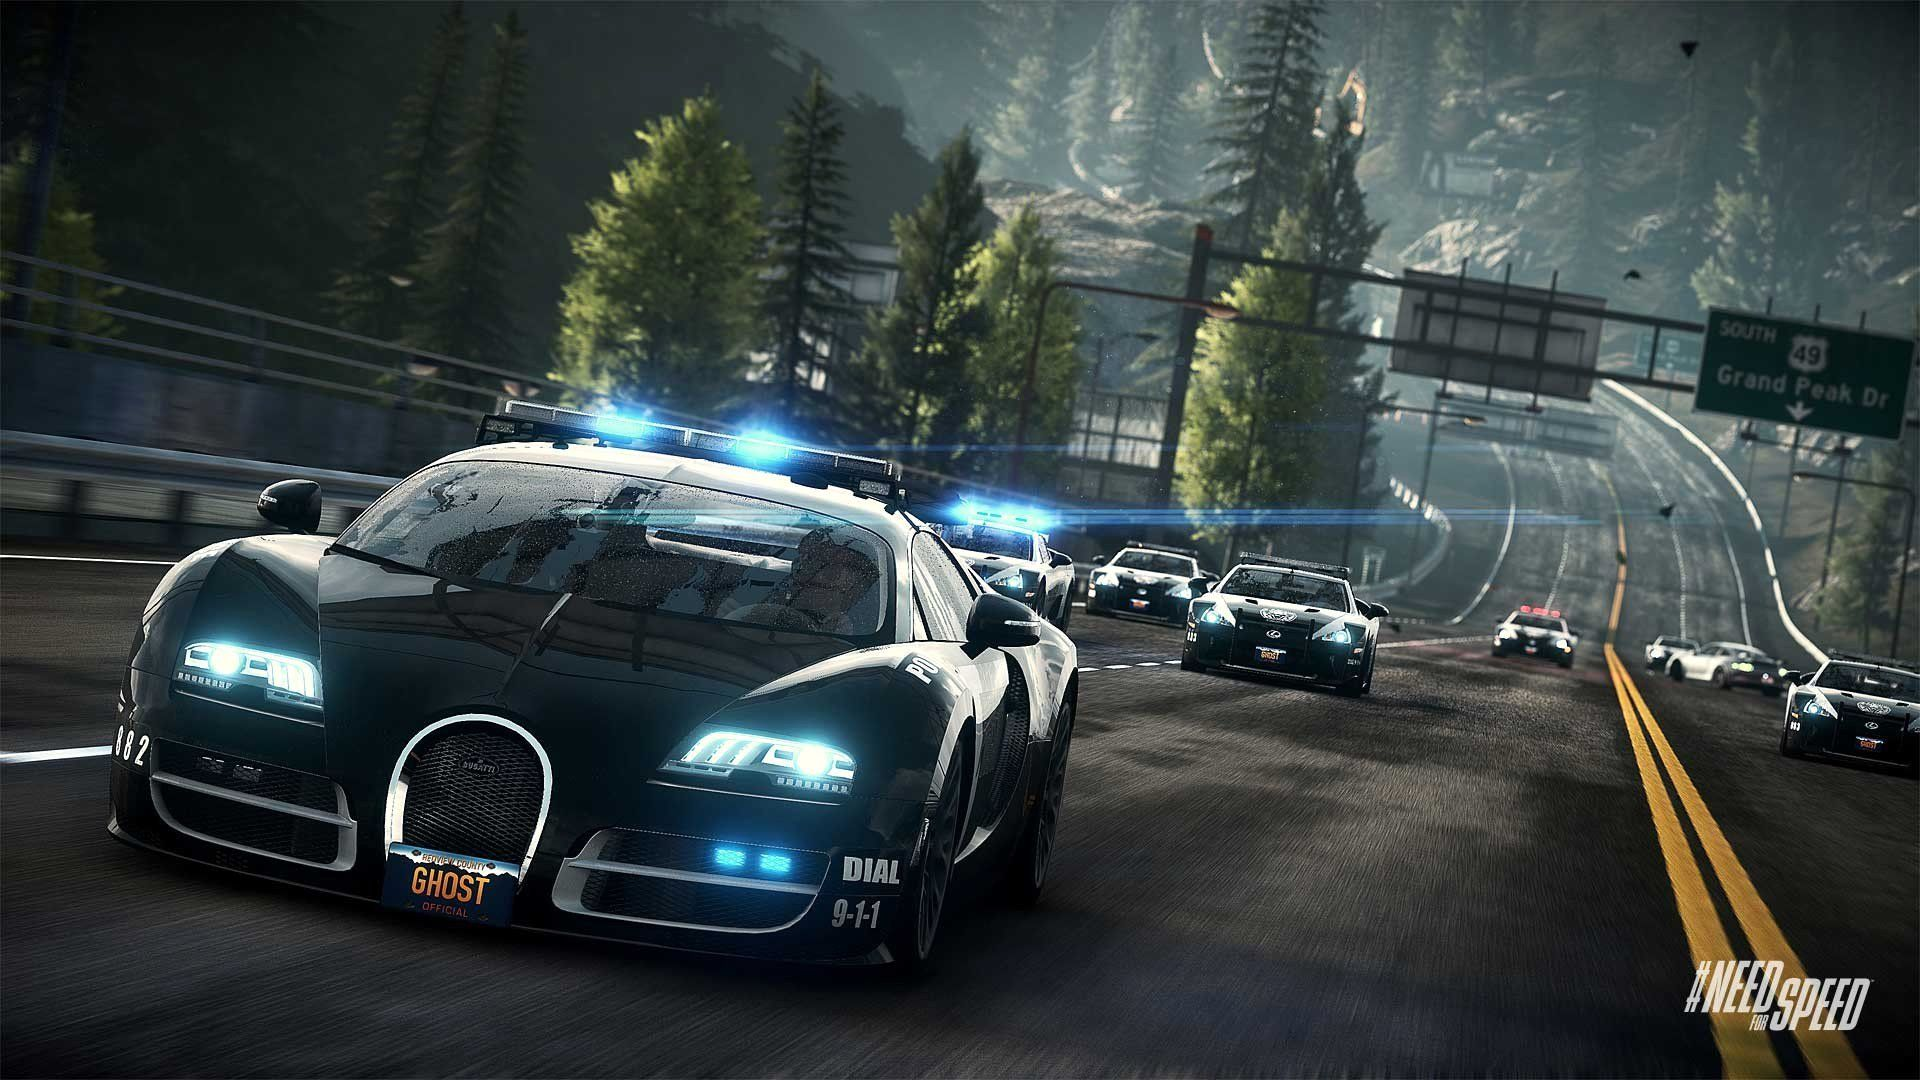 Bugatti Cop Car Wallpapers Background Wallpaper Hd Original Resolution Downloads From The Link Car Wallpapers Police Cars Car